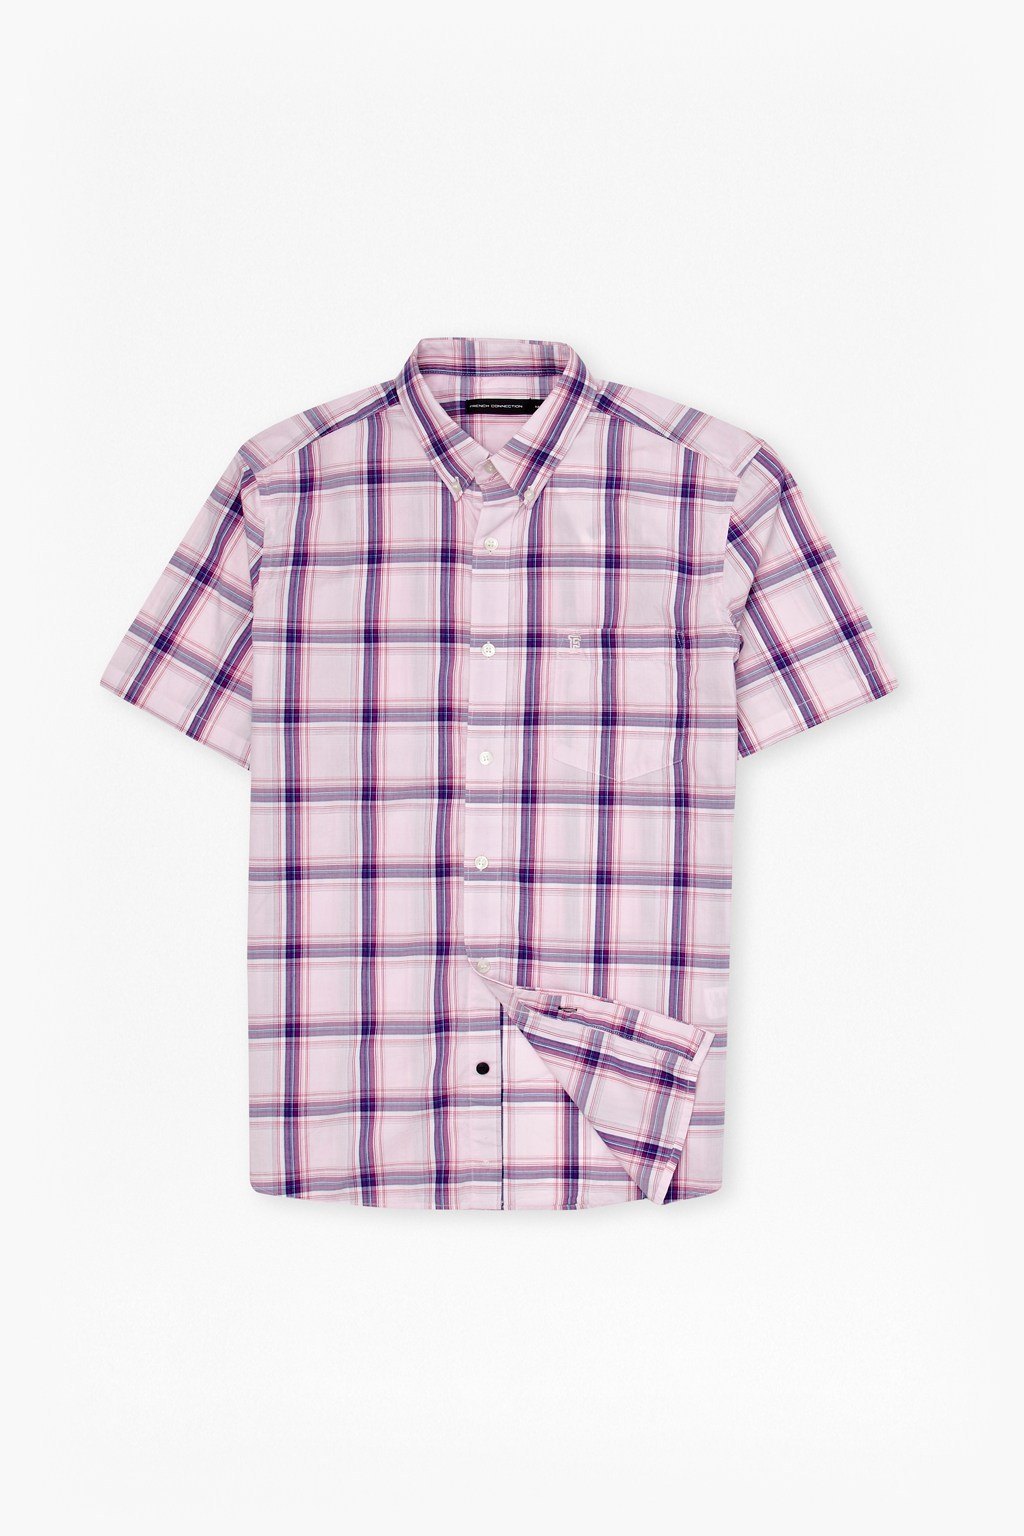 French Connection Candy Soft Checked Shirt In Pink For Men